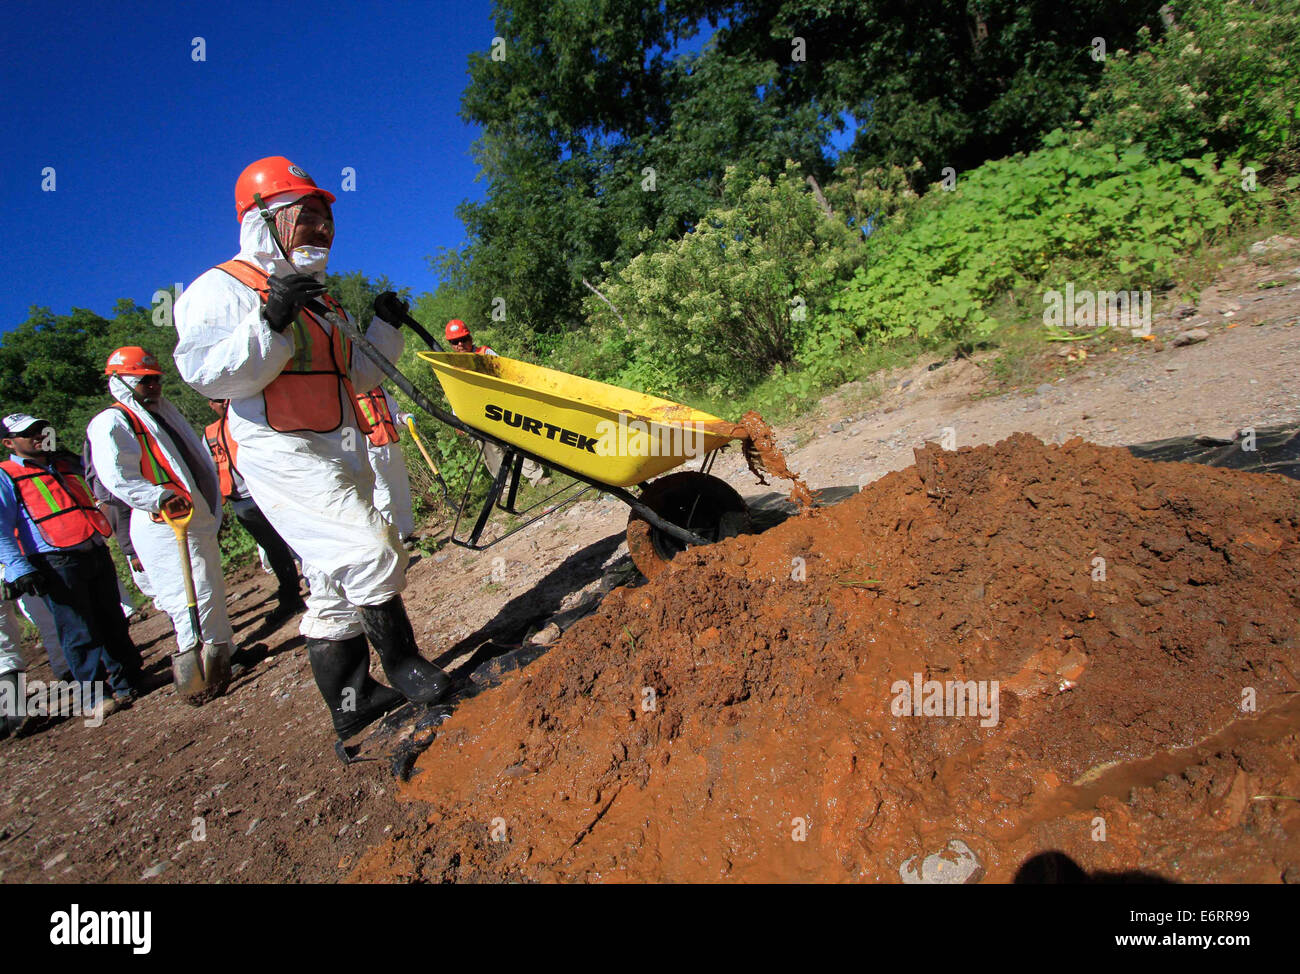 (140830) -- SONORA, Aug. 30, 2014 (Xinhua) -- Image taken on Aug. 28, 2014, shows employees performing cleaning - Stock Image